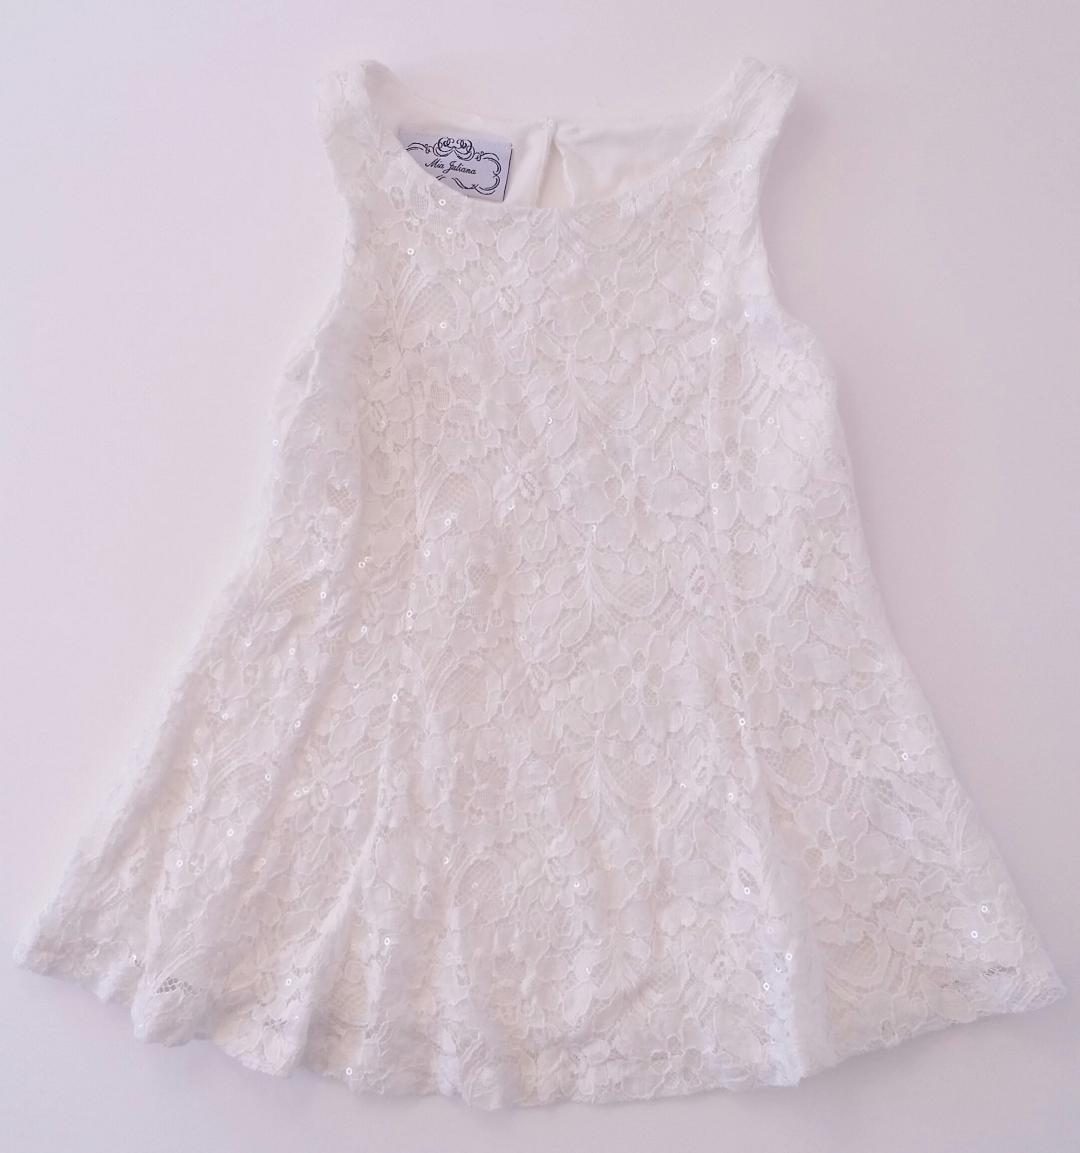 18-24-MONTHS-Lace-Sleeveless-Dress_2138965A.jpg